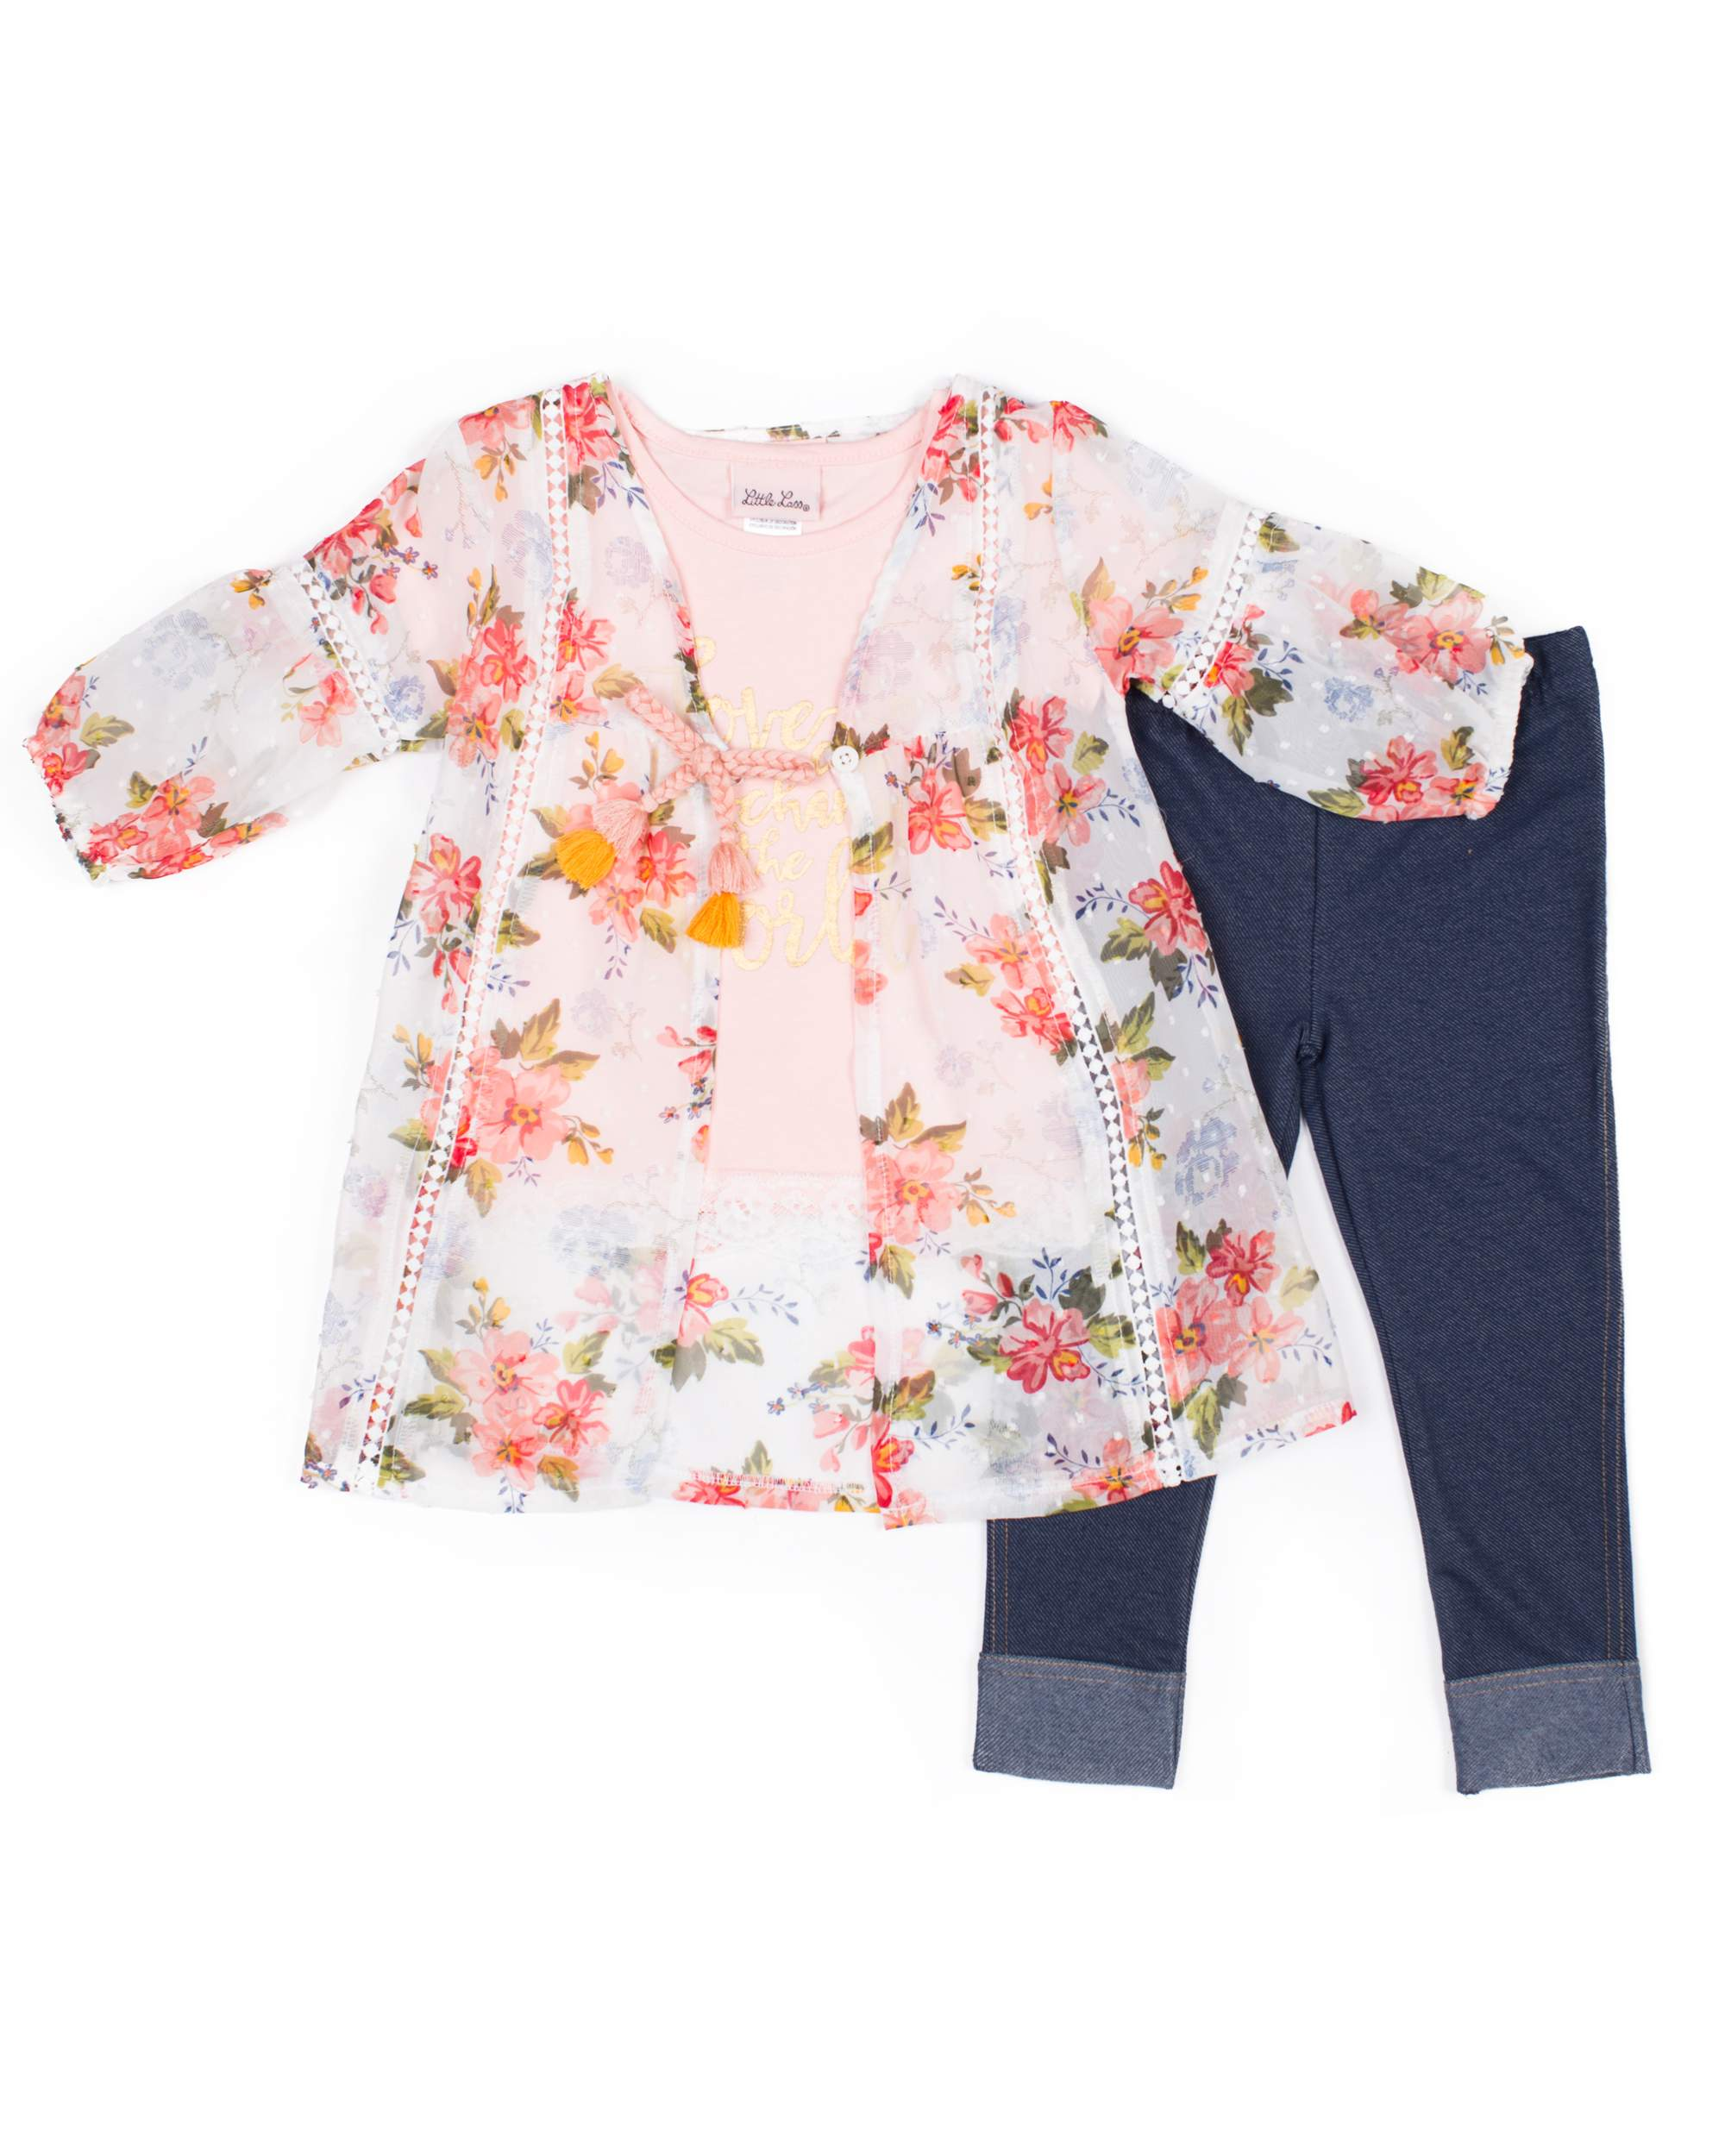 Floral Chiffon Kimono, Graphic Tee and Knit Denim Legging, 3-Piece Outfit Set (Little Girls)